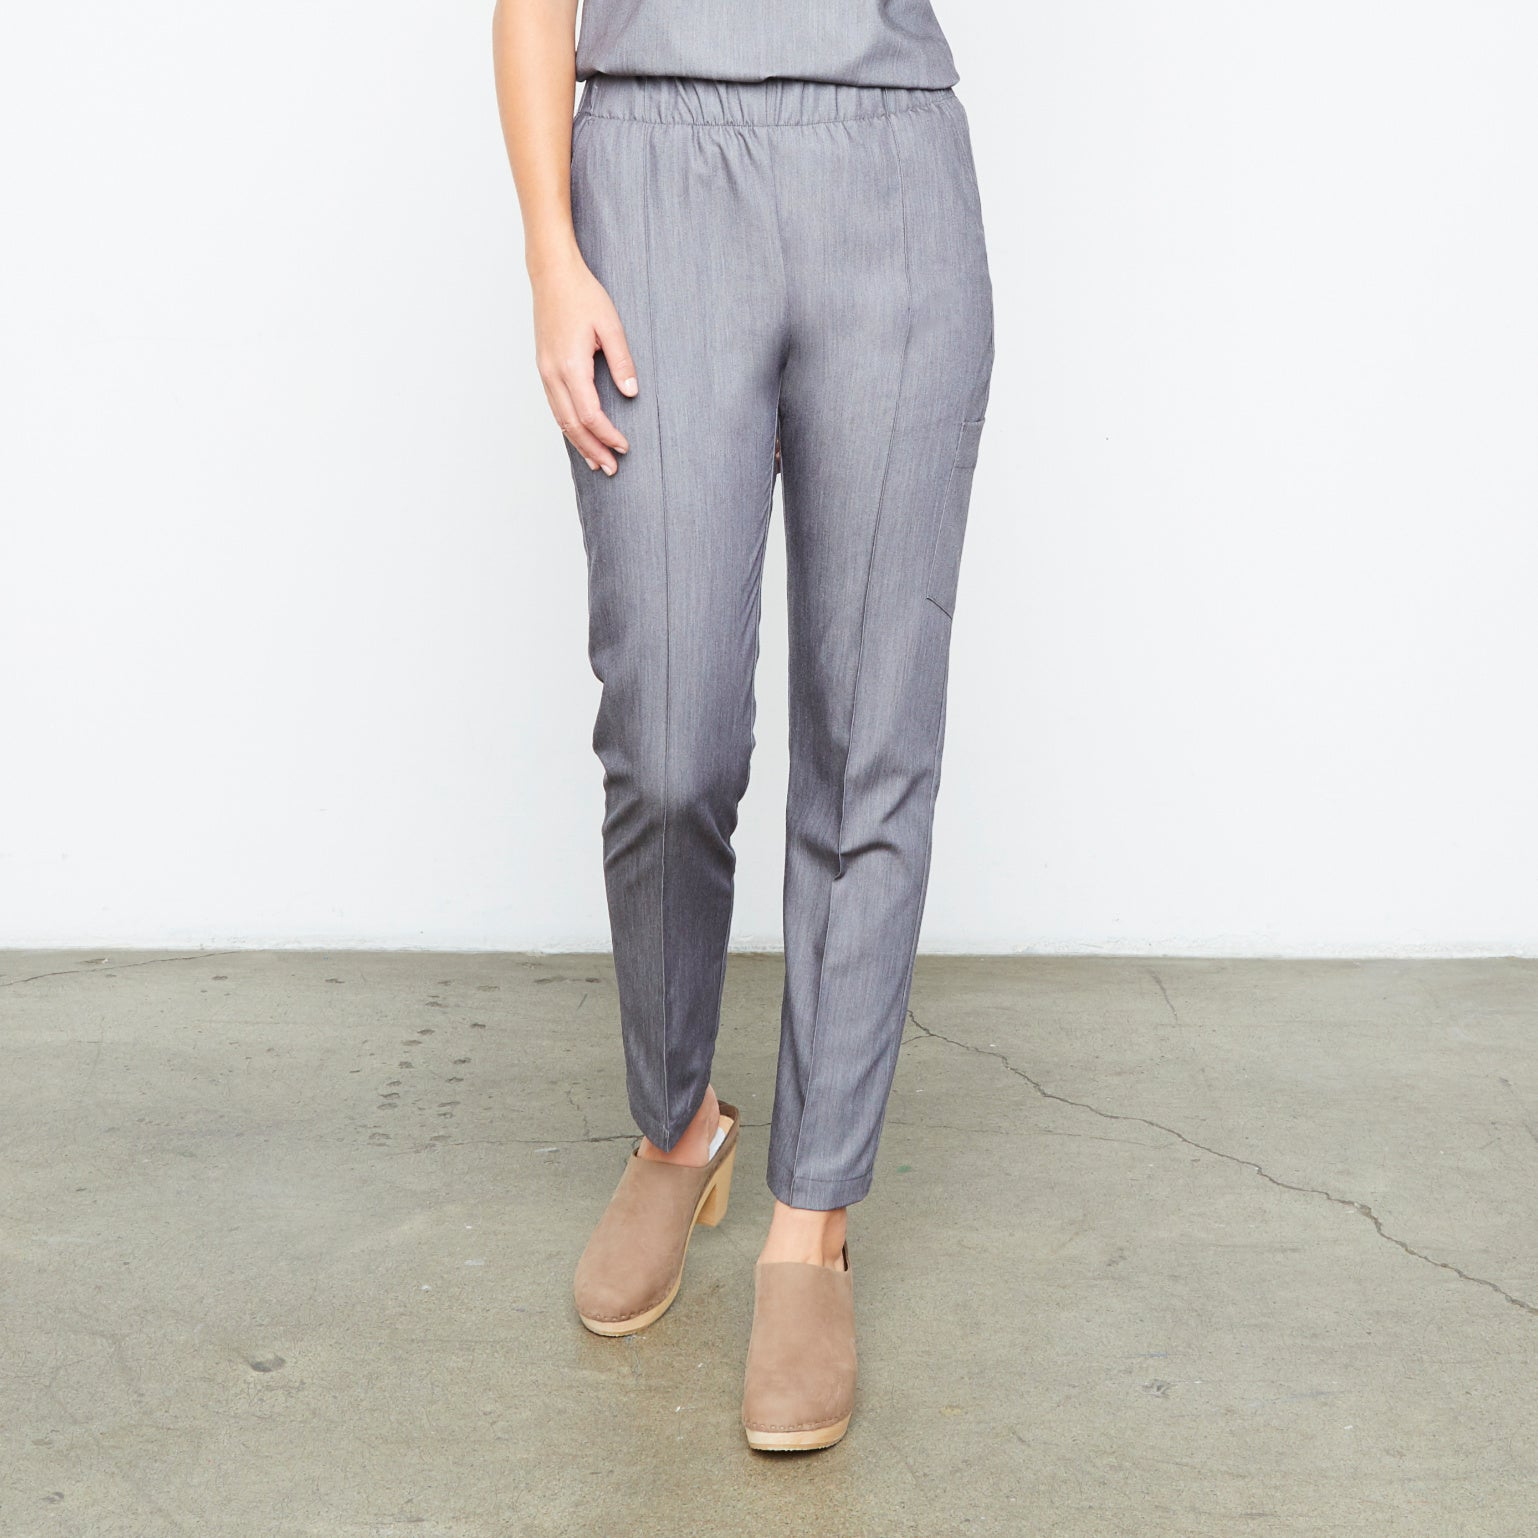 Harley Pant (Granite Smoothie) XXS | Fabled makes beautiful high quality scrub pants for women. Scrubs fashion for women doctors and healthcare professionals..